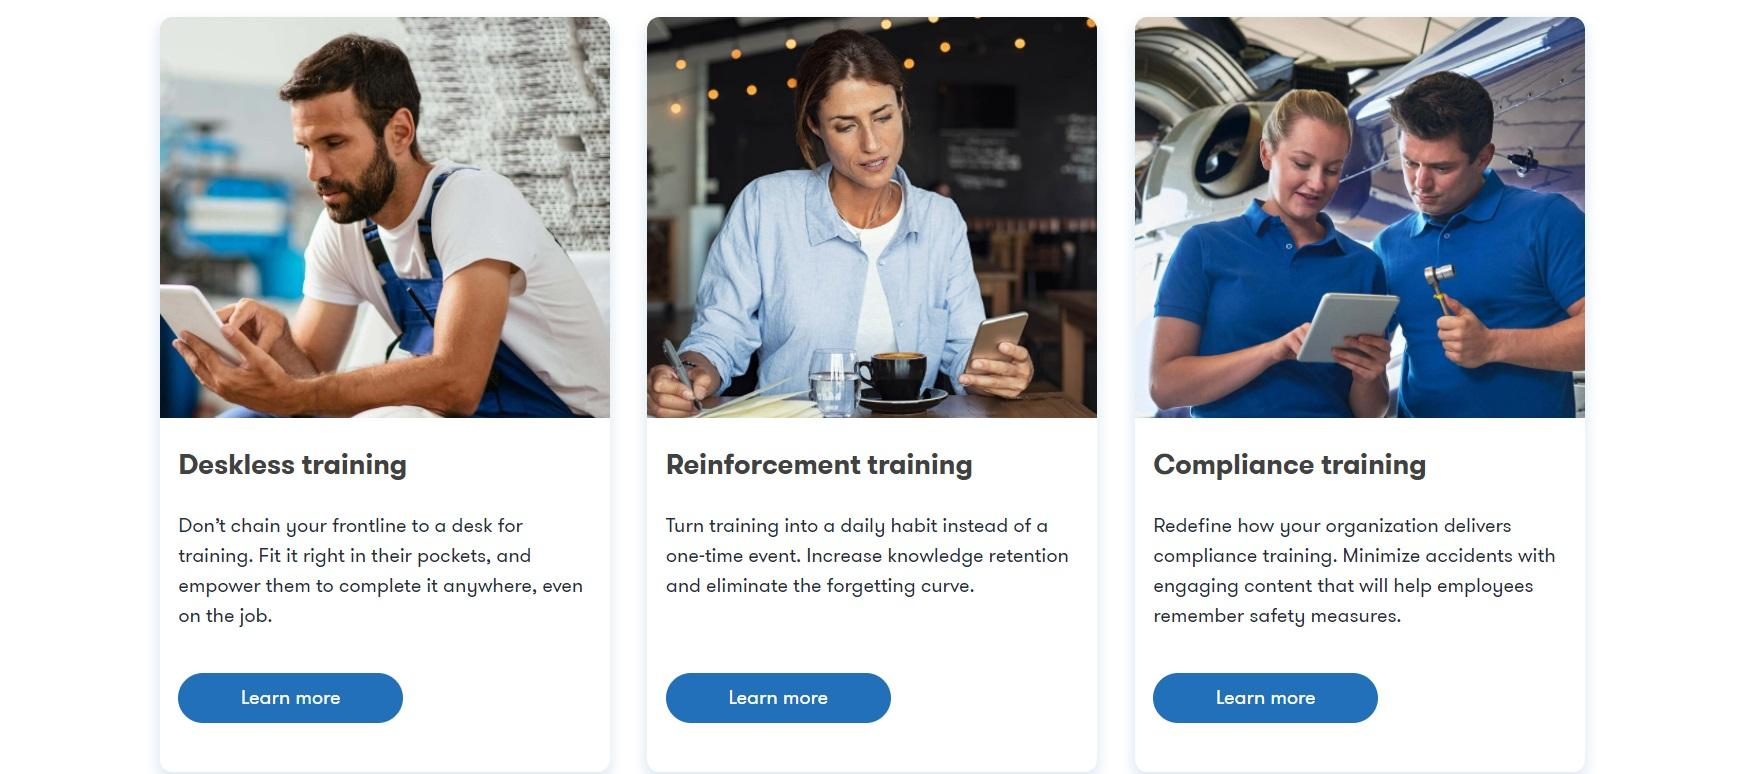 TalentCards offers a variety of training solutions